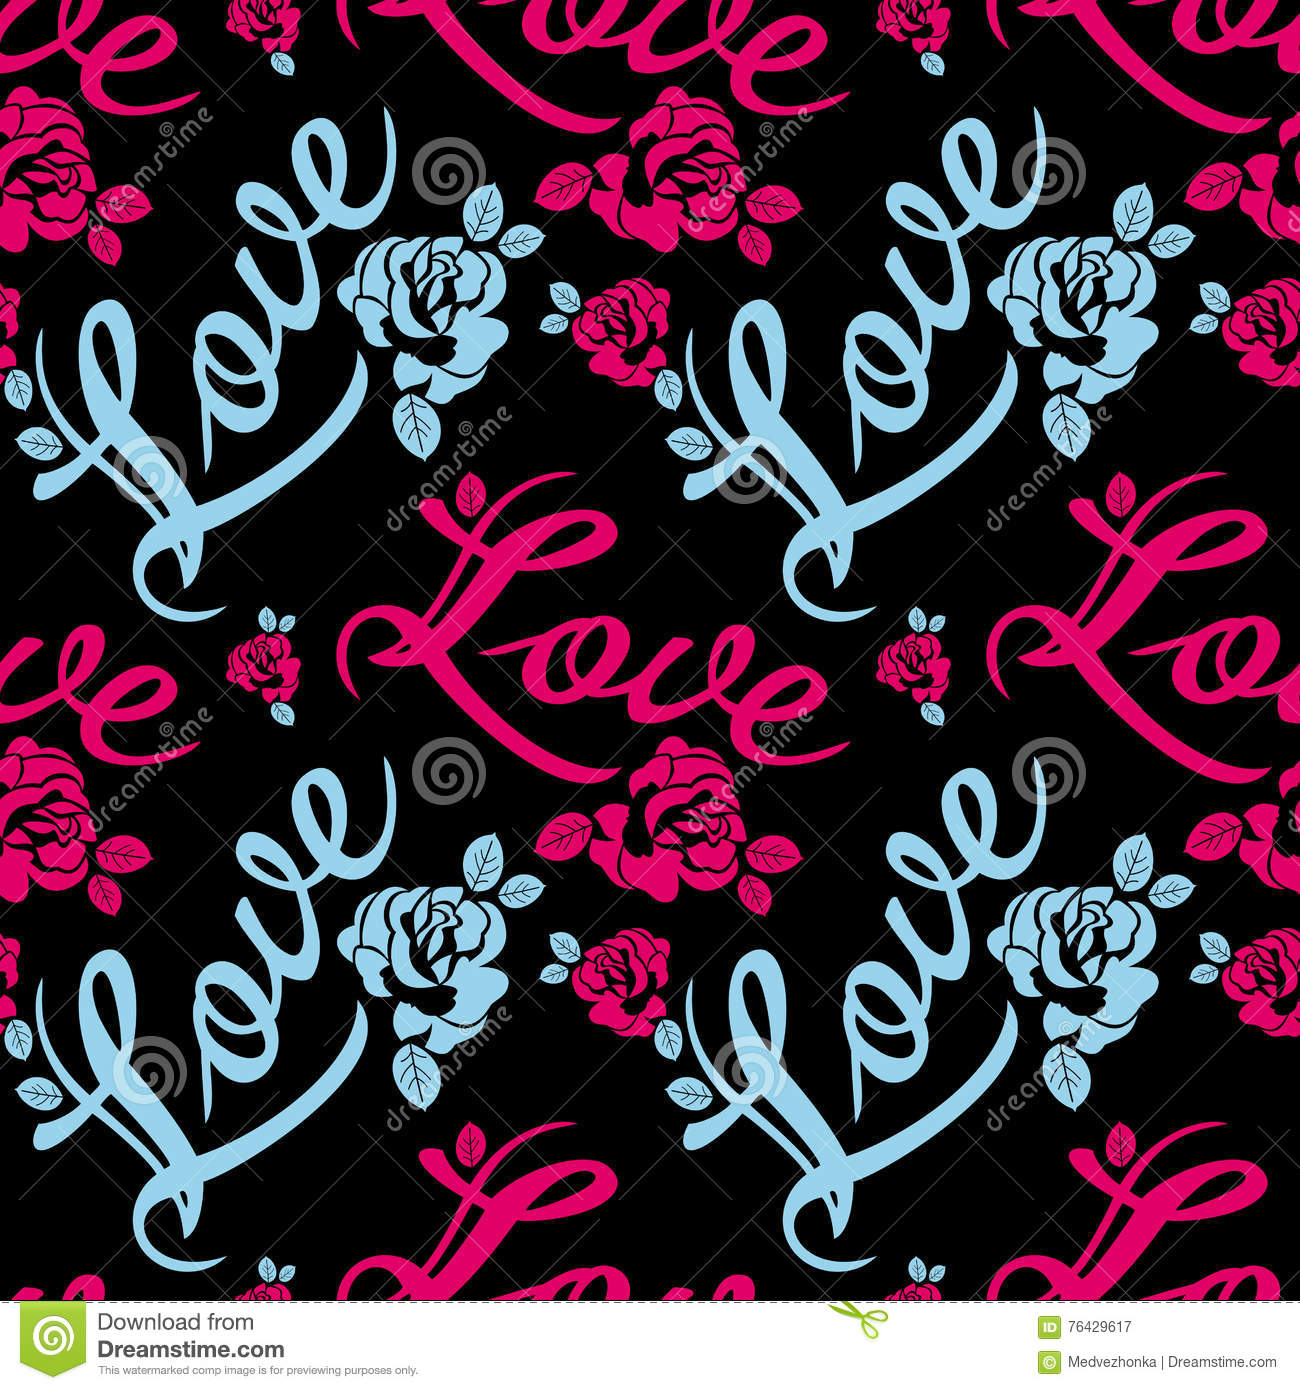 Royalty Free Il Ration Download Seamless Pattern With Single Word Love And Roses Silhouettes Stock Il Ration